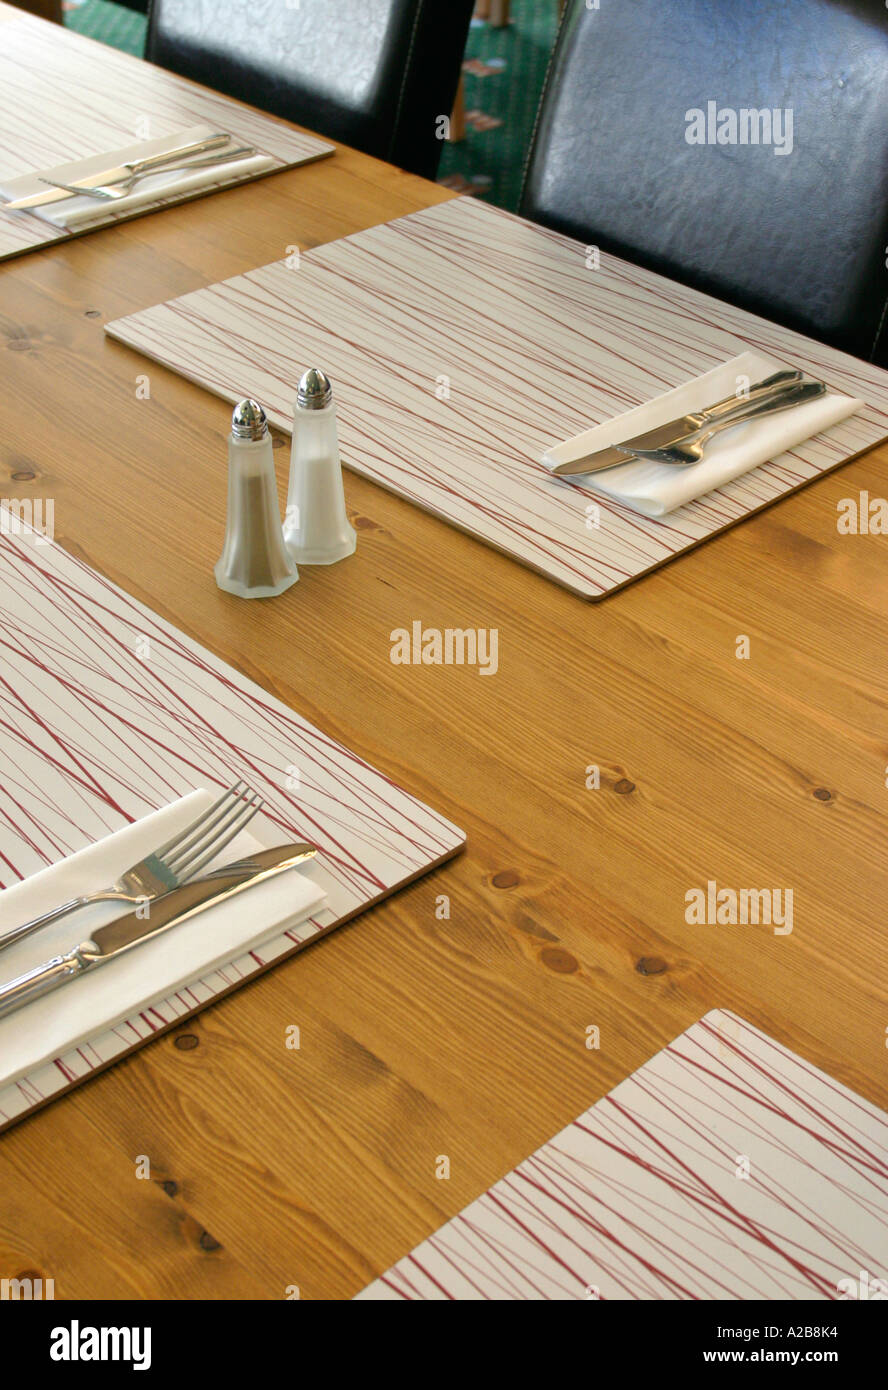 Modern restaurant table setting - Modern Wooden Restaurant Table Showing Knives Forks And Condiment Set With Place Settings And Mats